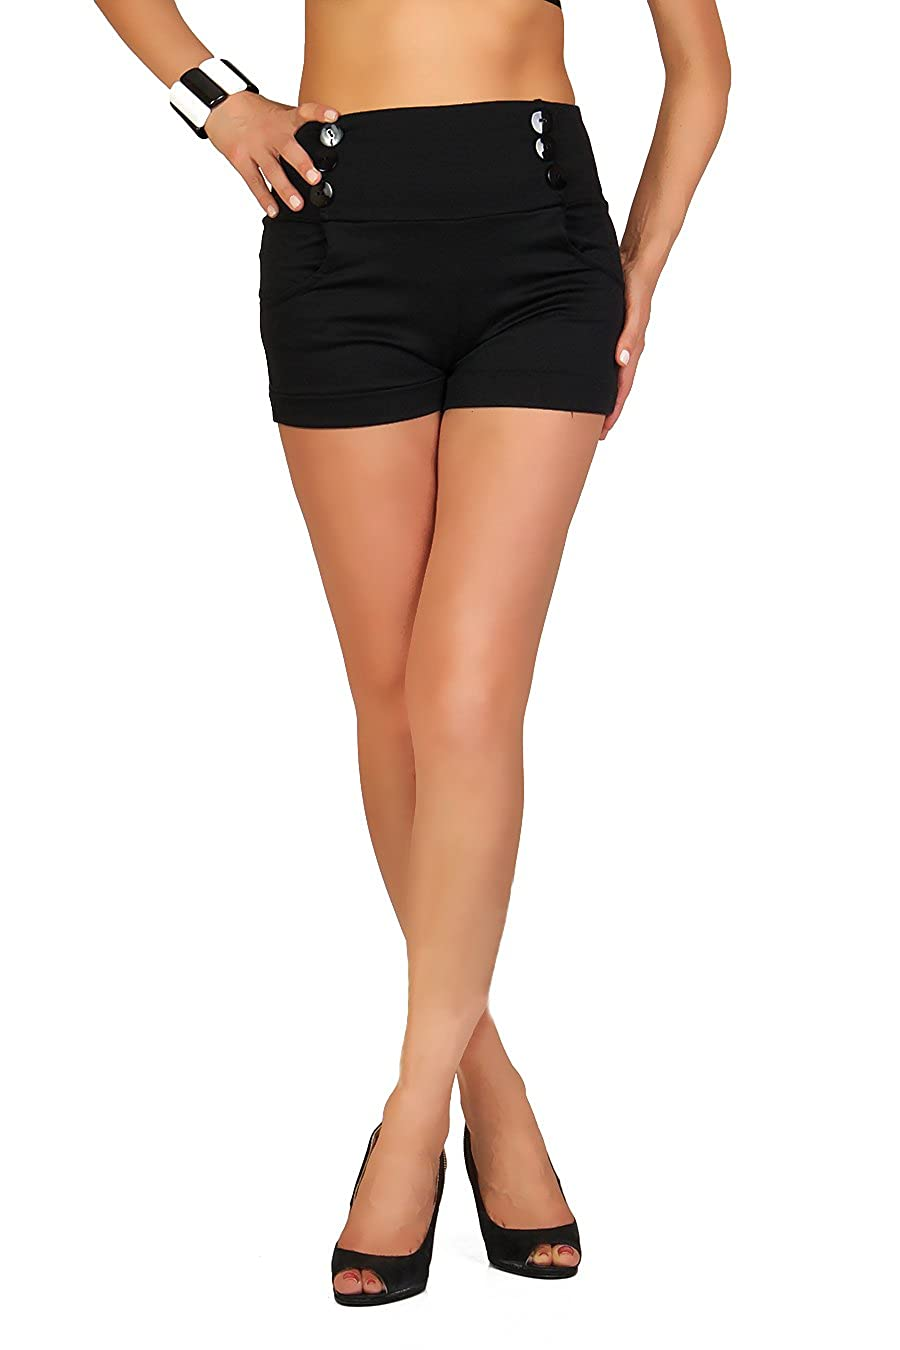 FUTURO FASHION Summer High Waisted Sophisticated Trendy Shorts with Pockets and Buttons Size 8-18 UK PA08